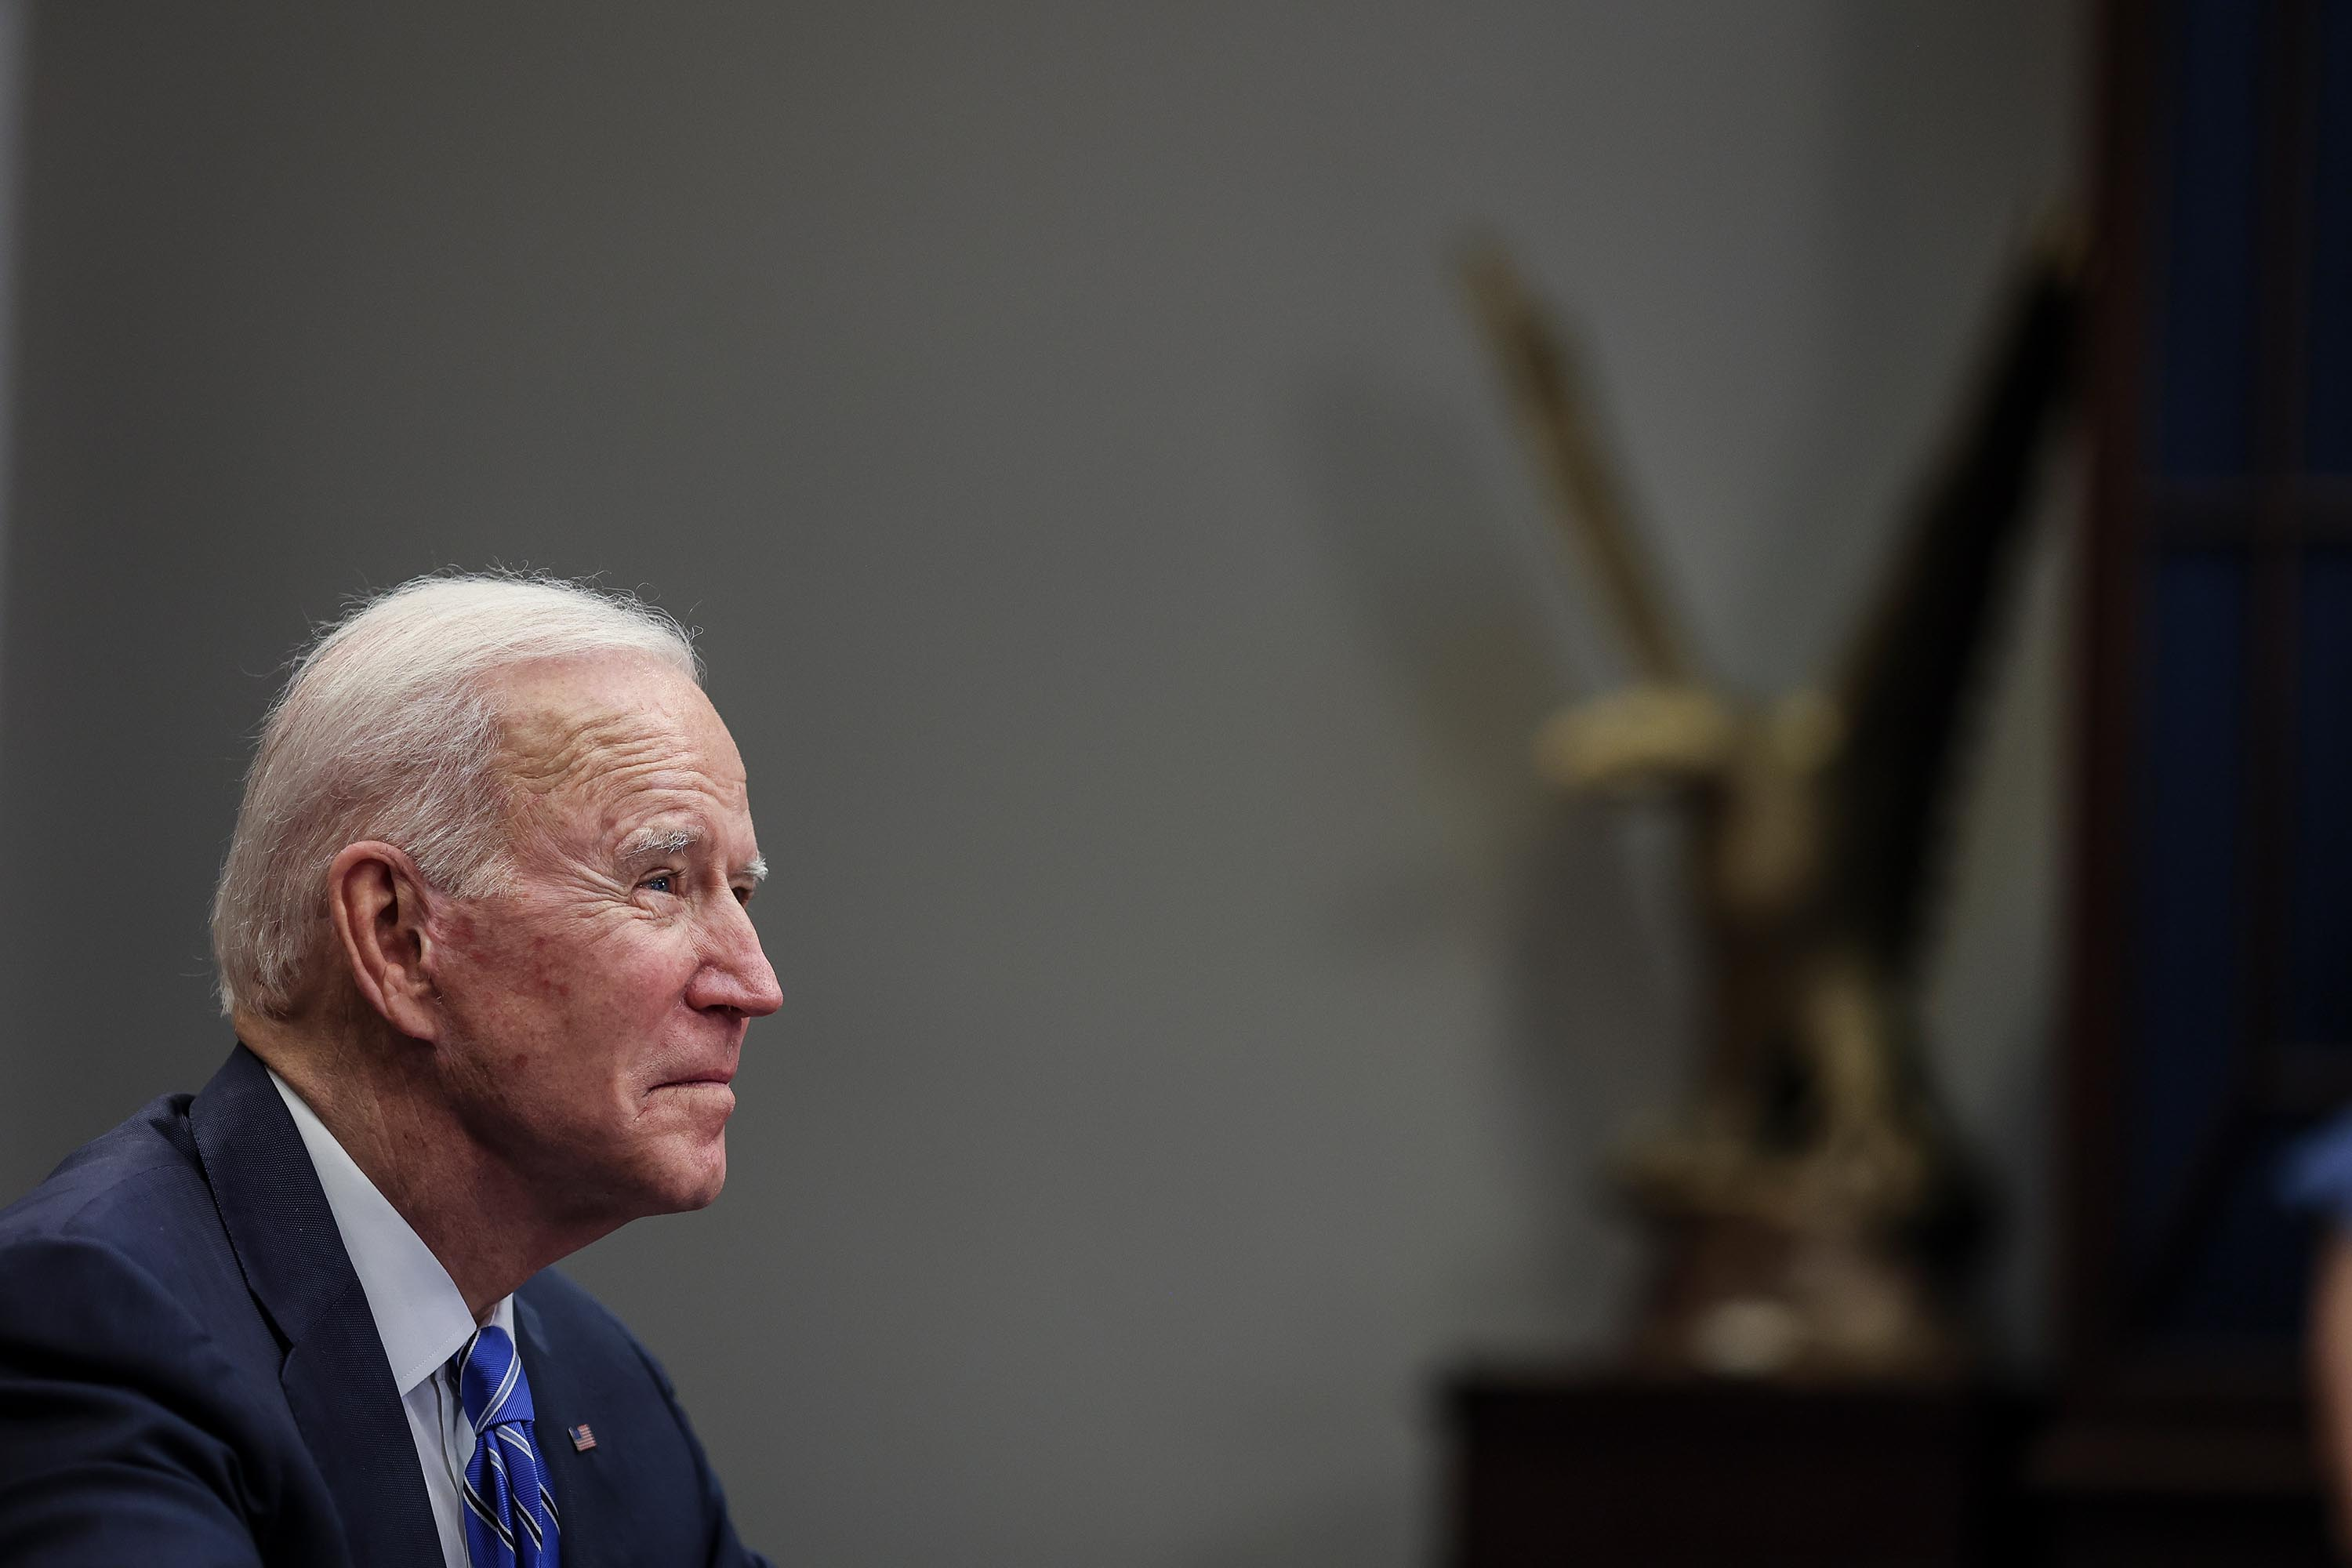 Biden developing pardon process with focus on racial justice, expected to issue acts of clemency before middle of term